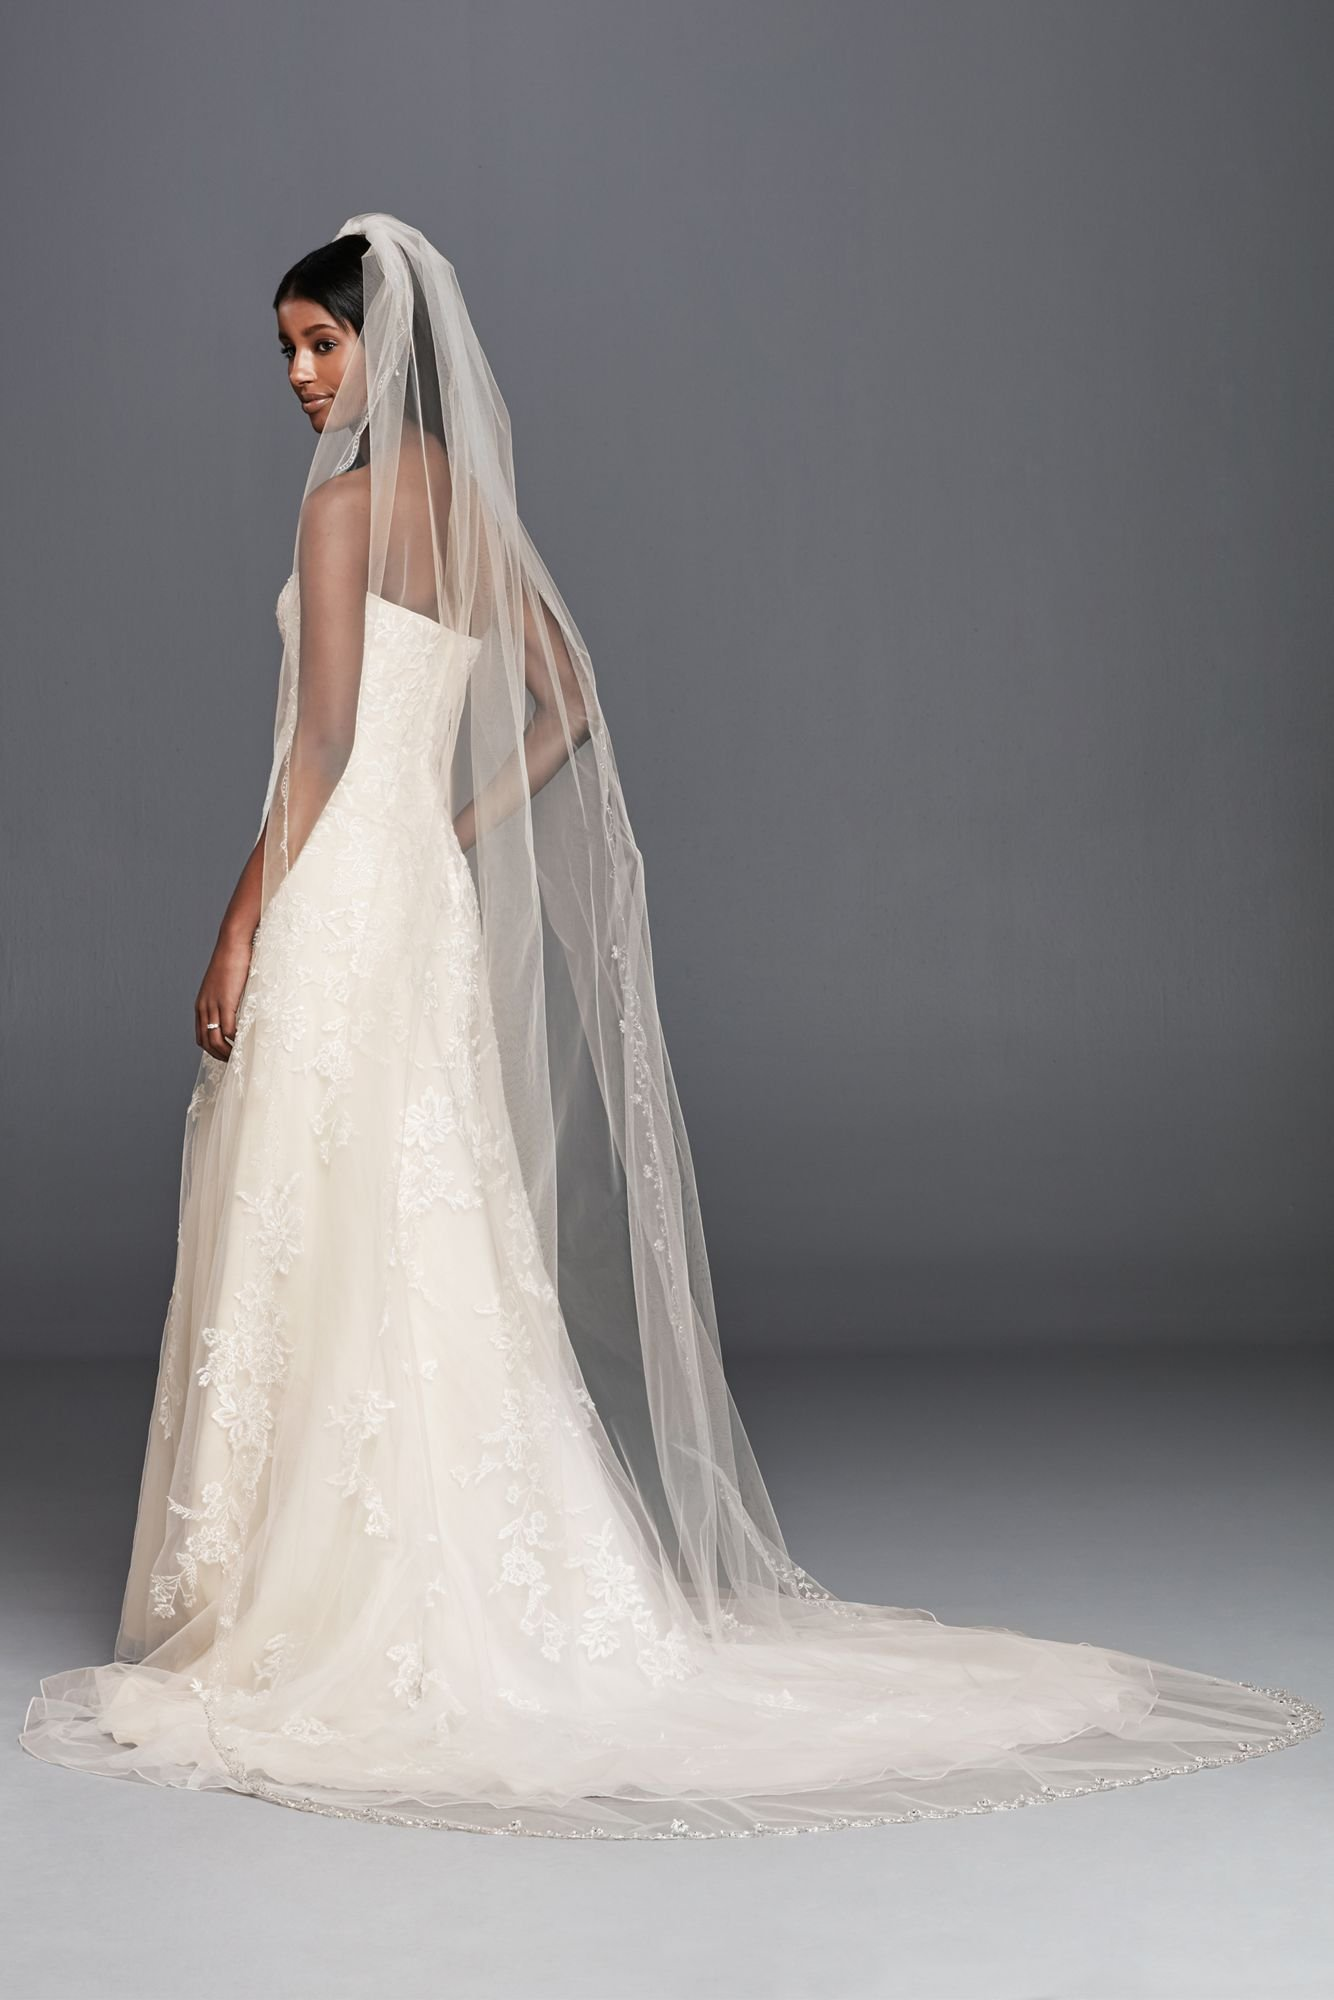 Top-Sexy Champagne 1 Tier 3M Cathedral Sparkly CrystalSilver Lined Beaded Edge Fingertip Length Bridal Wedding Veil 04